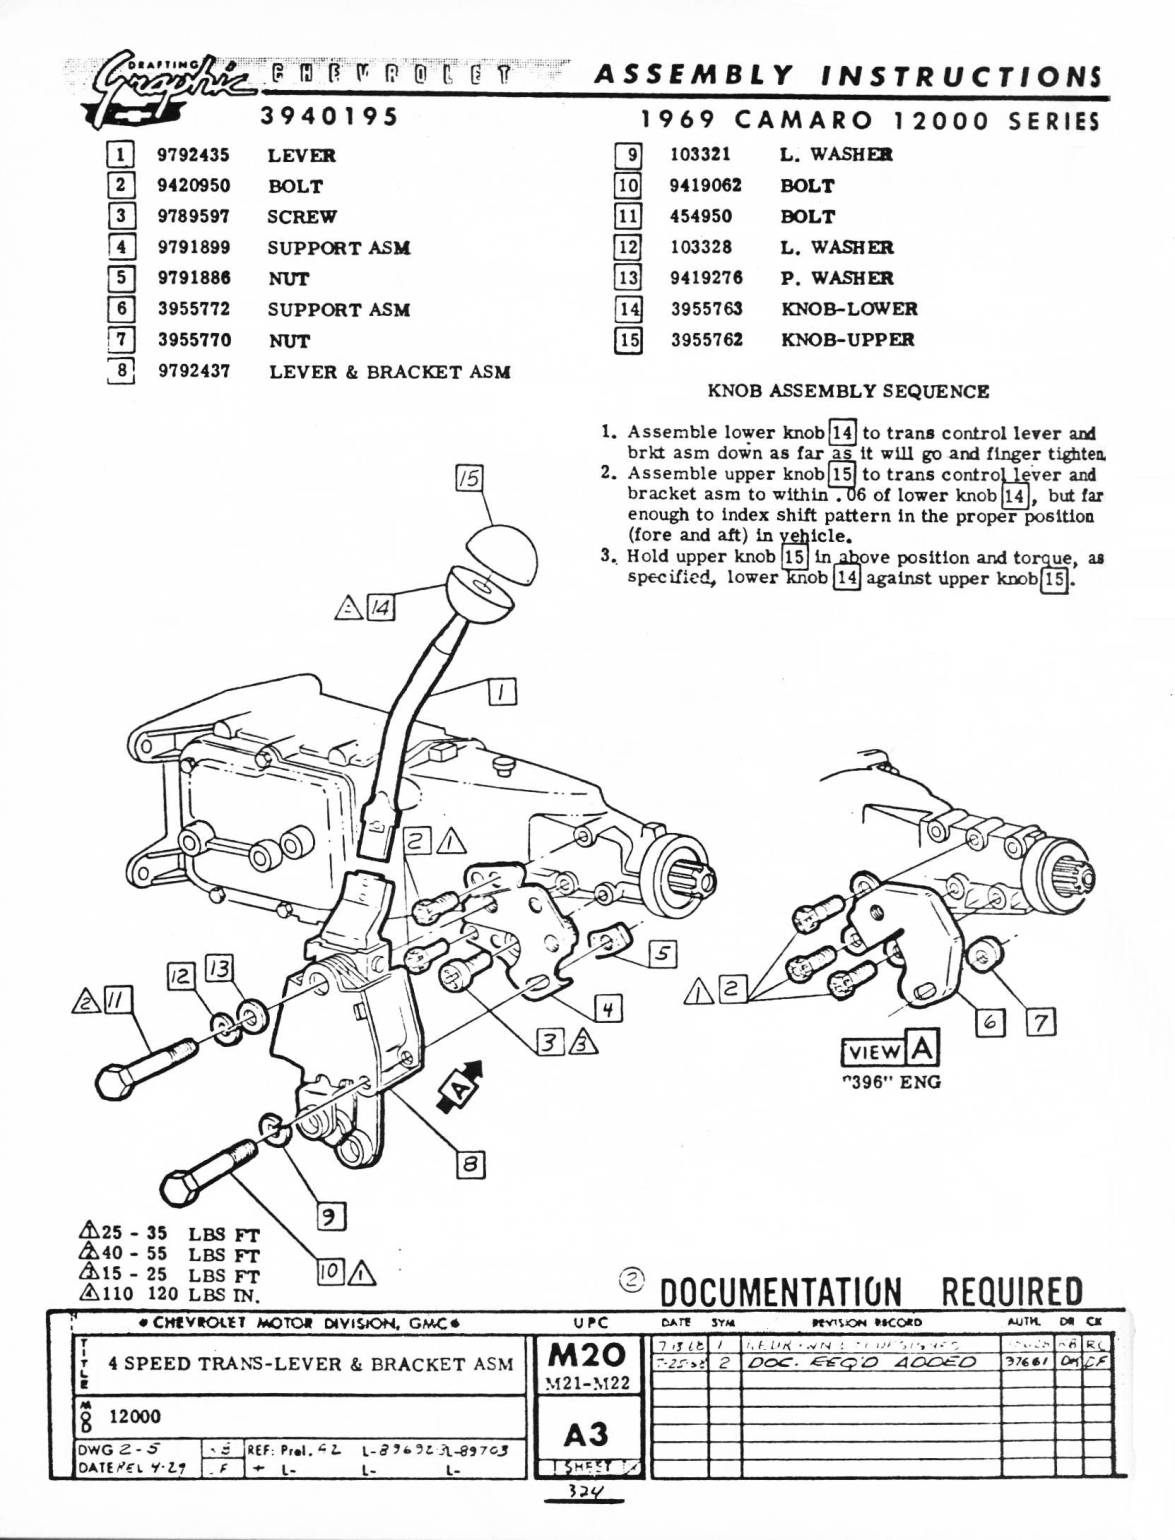 CRG Research Report - 1967-69 Camaro Manual Transmission Floor Shifters